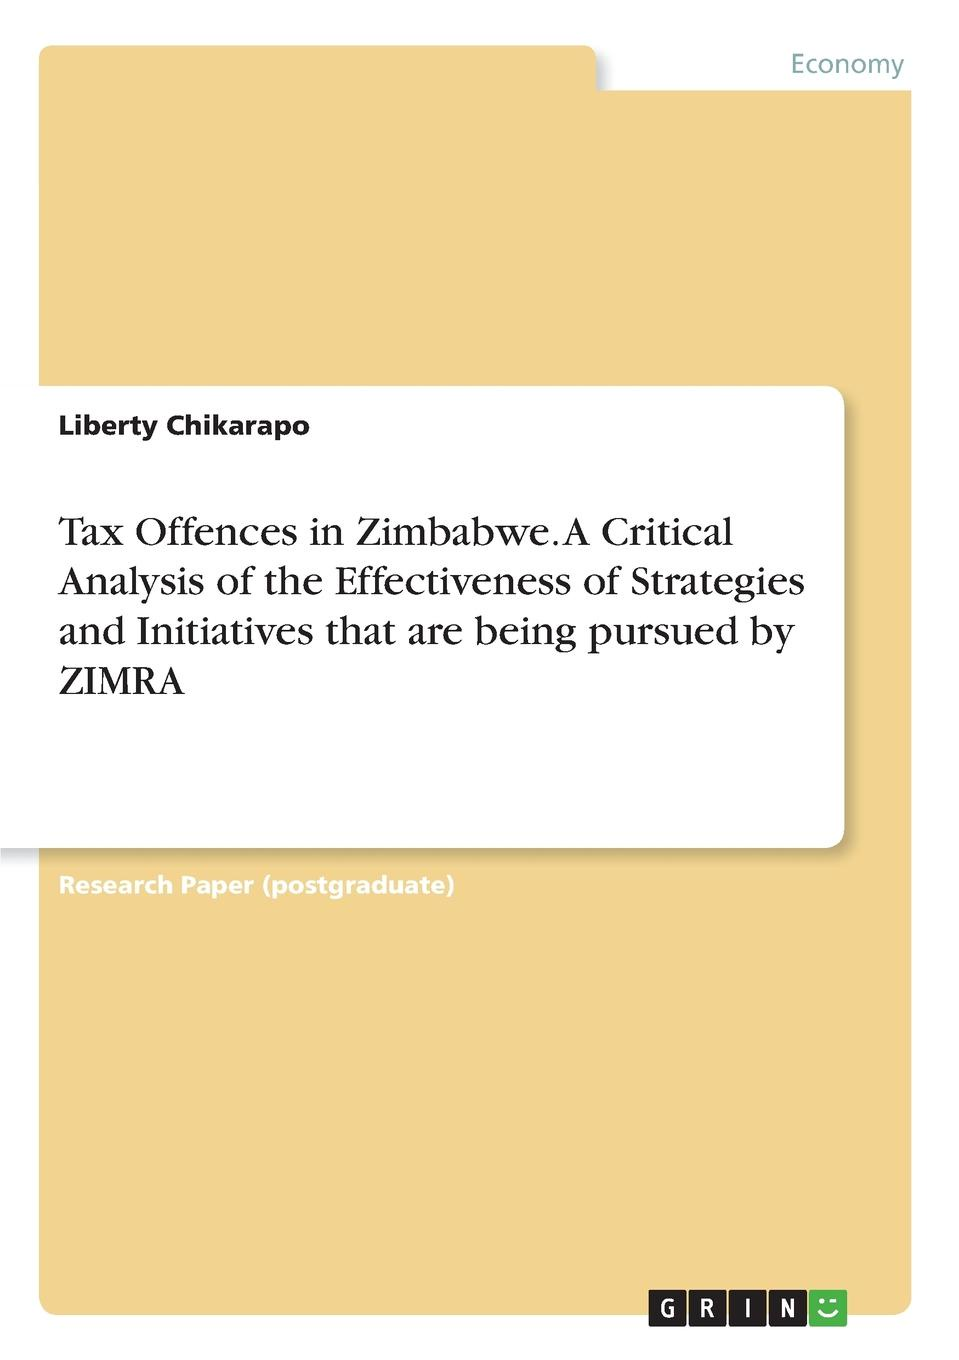 Liberty Chikarapo Tax Offences in Zimbabwe. A Critical Analysis of the Effectiveness of Strategies and Initiatives that are being pursued by ZIMRA mahmudul hasan review of the current legal and institutional mechanisms in relation to the environment pollution control in bangladesh